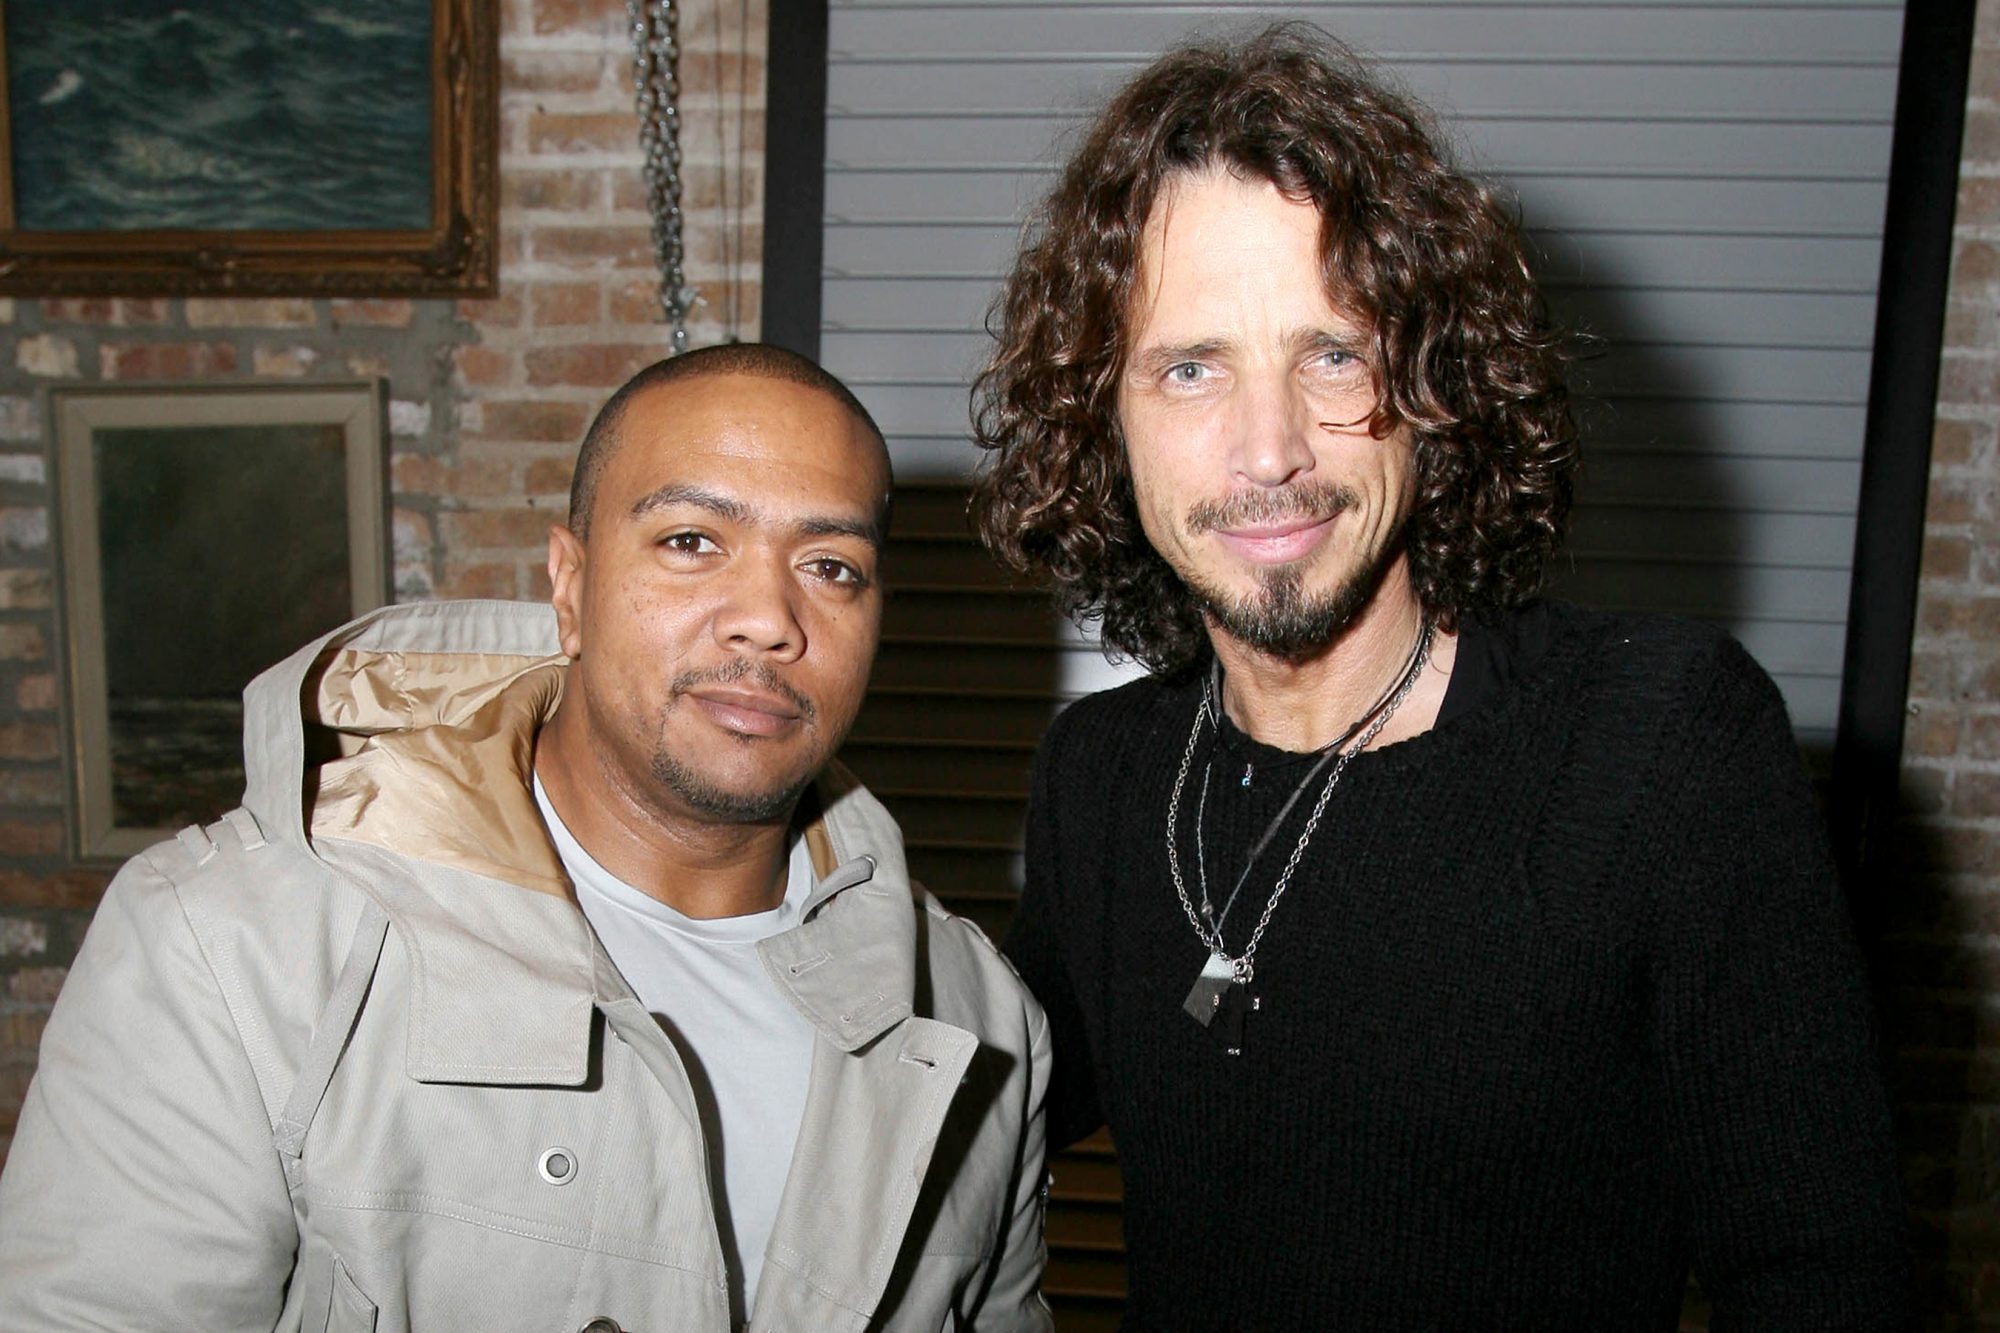 Verizon and BlackBerry Debut a Collaboration from Chris Cornell & Timbaland